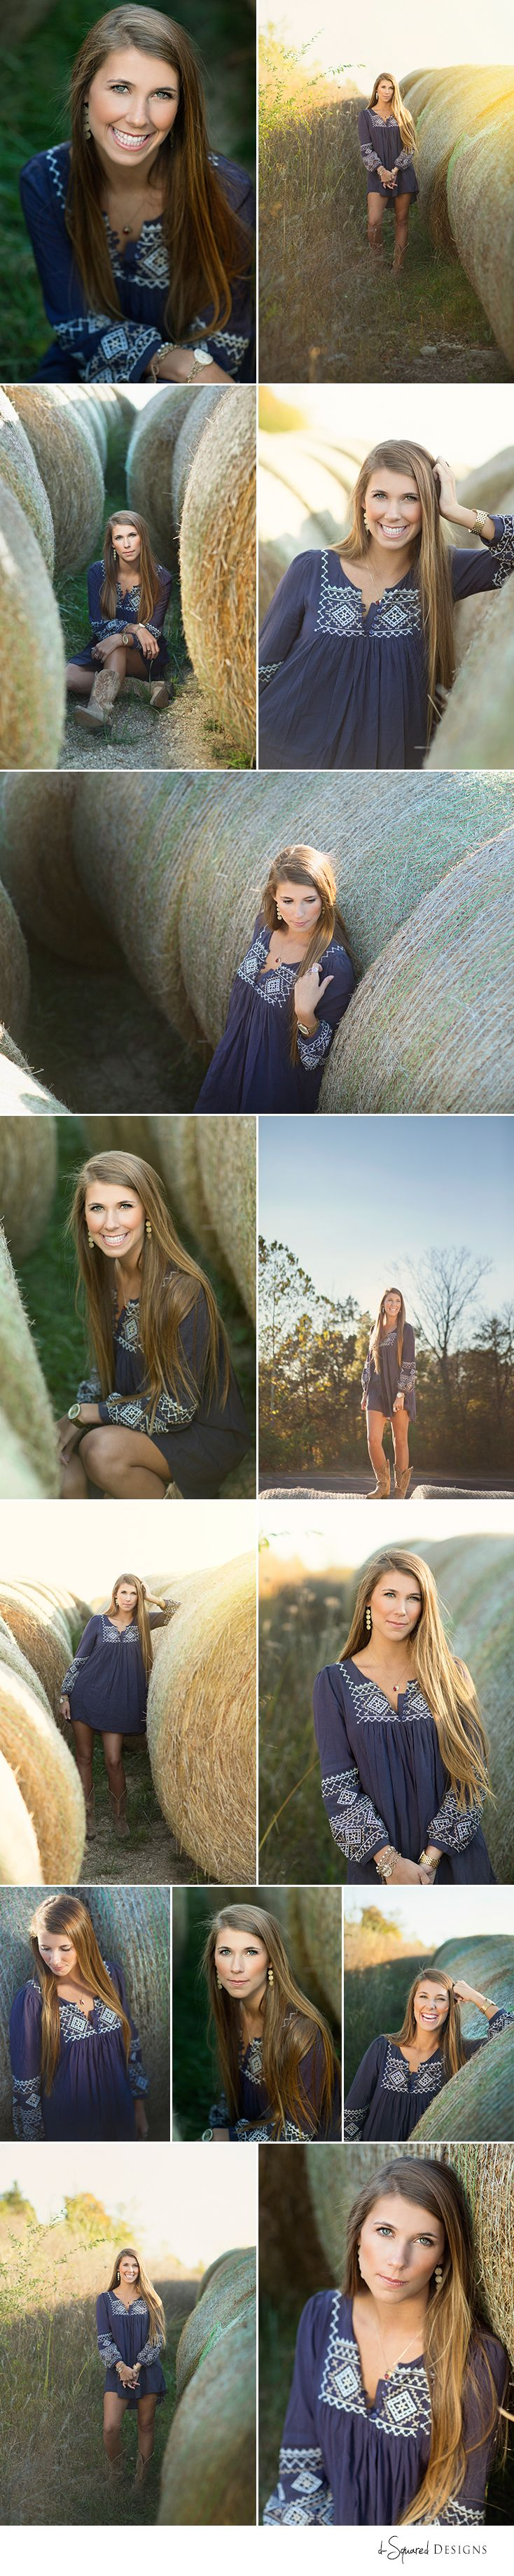 d-Squared Designs St. Louis, MO Senior Photography. Farm senior session. Hay-bails. Gorgeous senior.